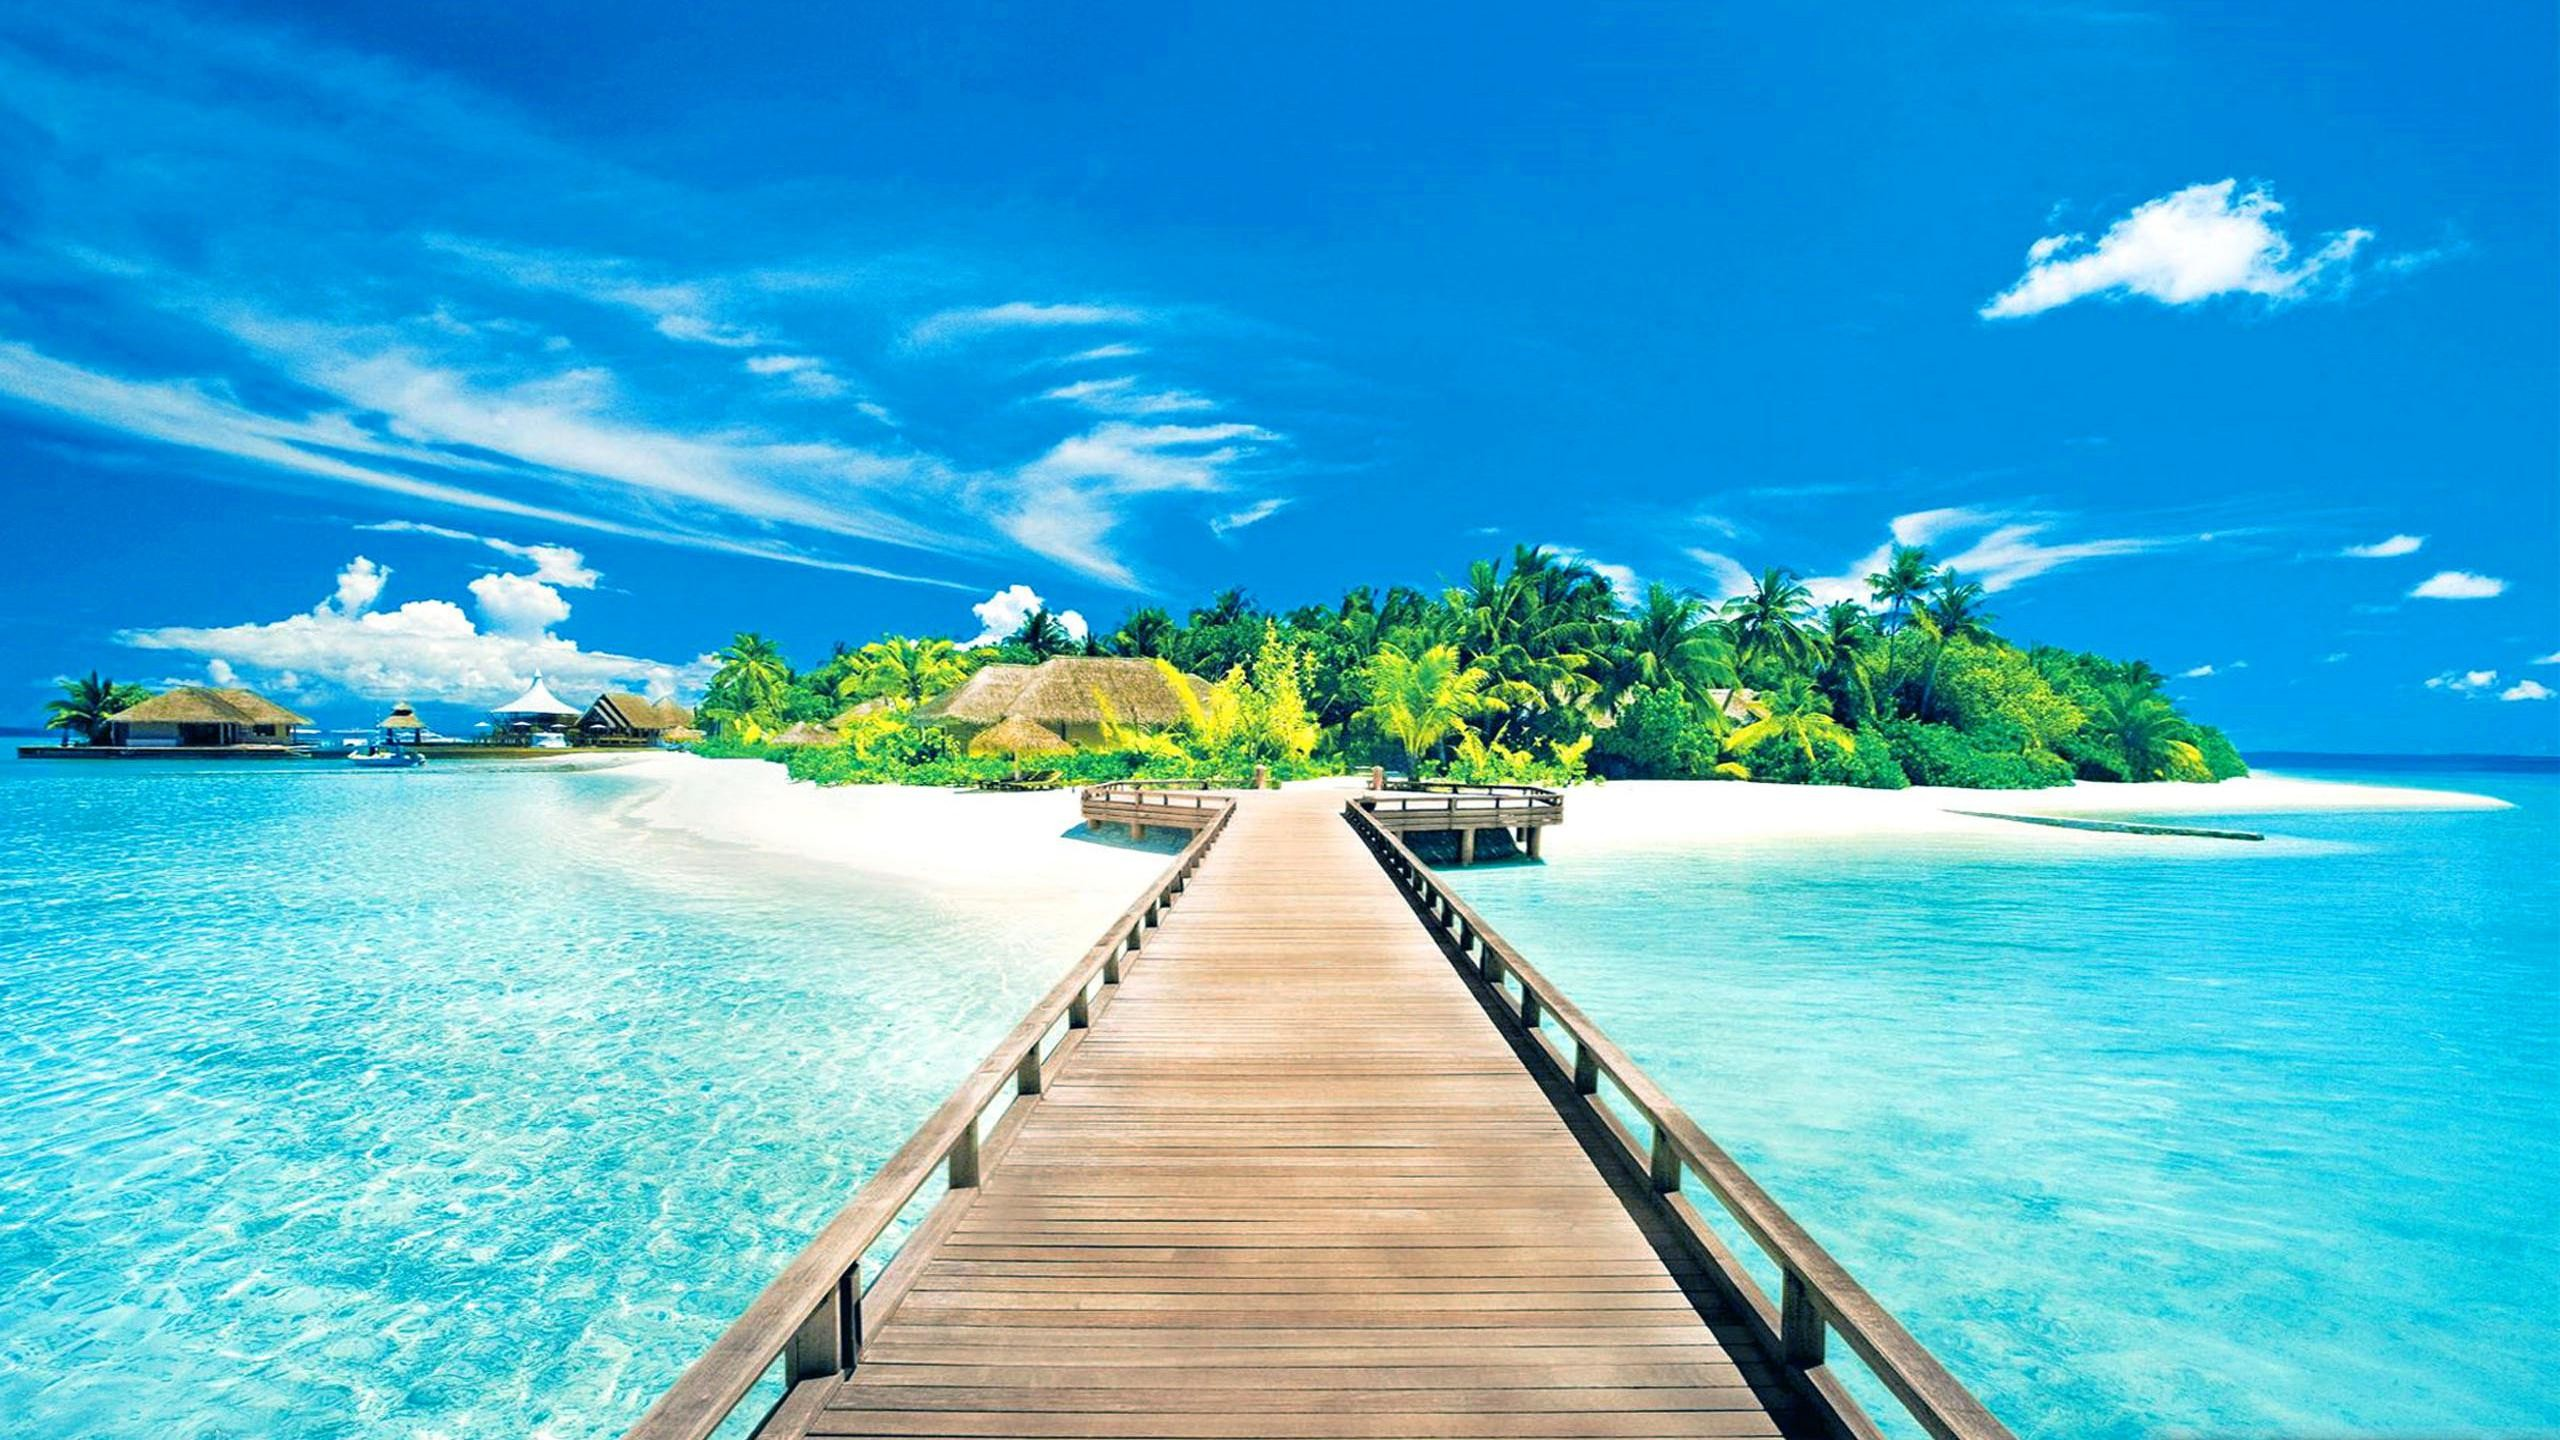 Beaches & Islands Stock Photos in High Quality HD Resolutions. Best  1920×1080 beach Wide Wallpapers For Desktop Background for any Computer,  Laptop, …